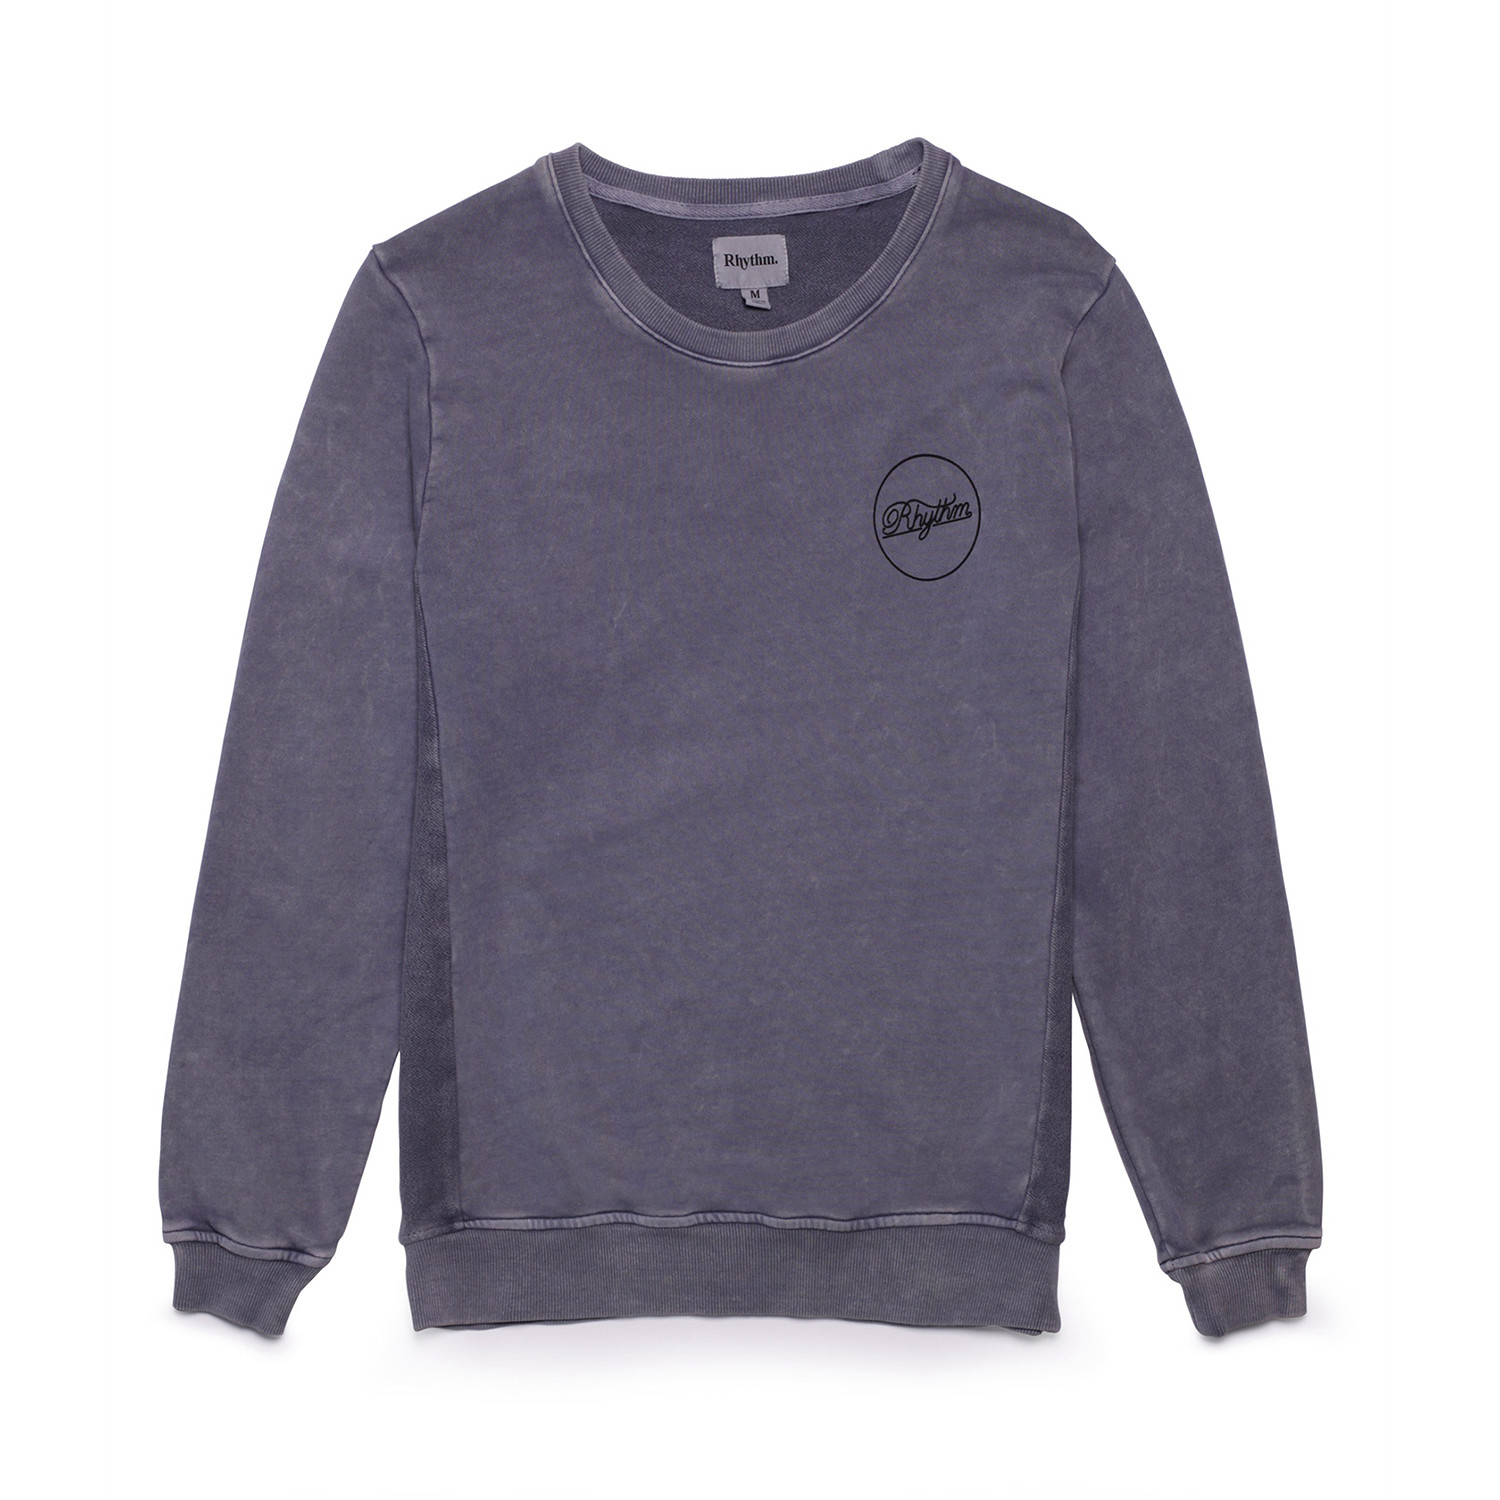 Washed Out Pullover Dusted Blue S Rhythm Clothing